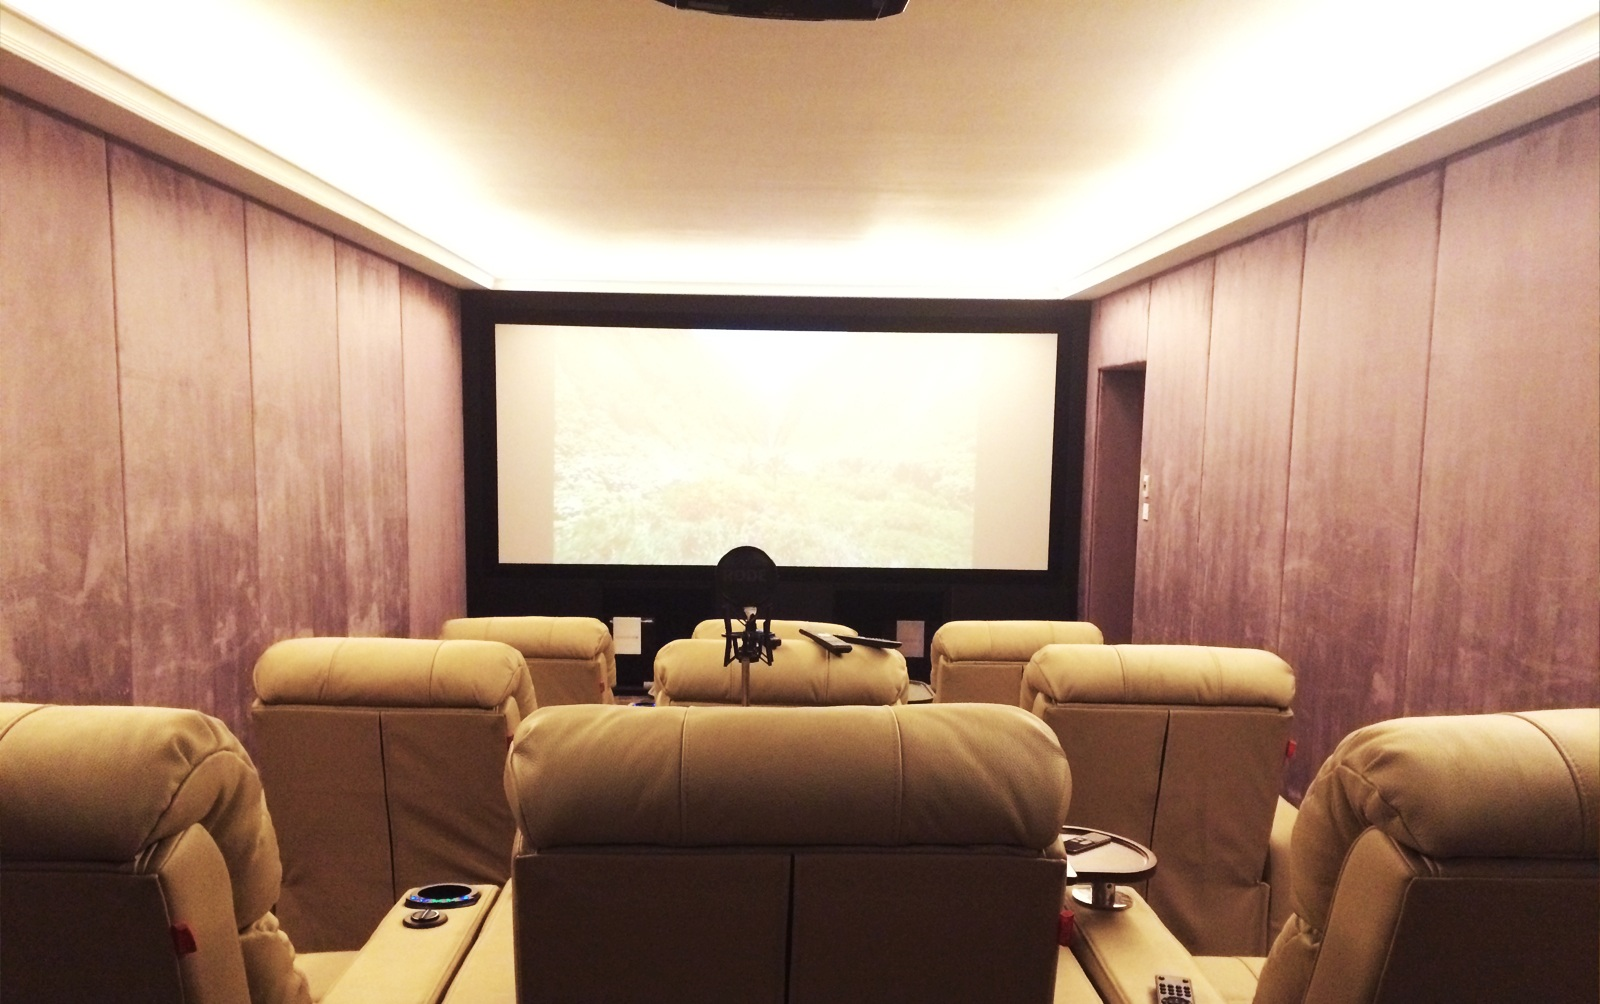 A Cinemascopic screen for the movie lover